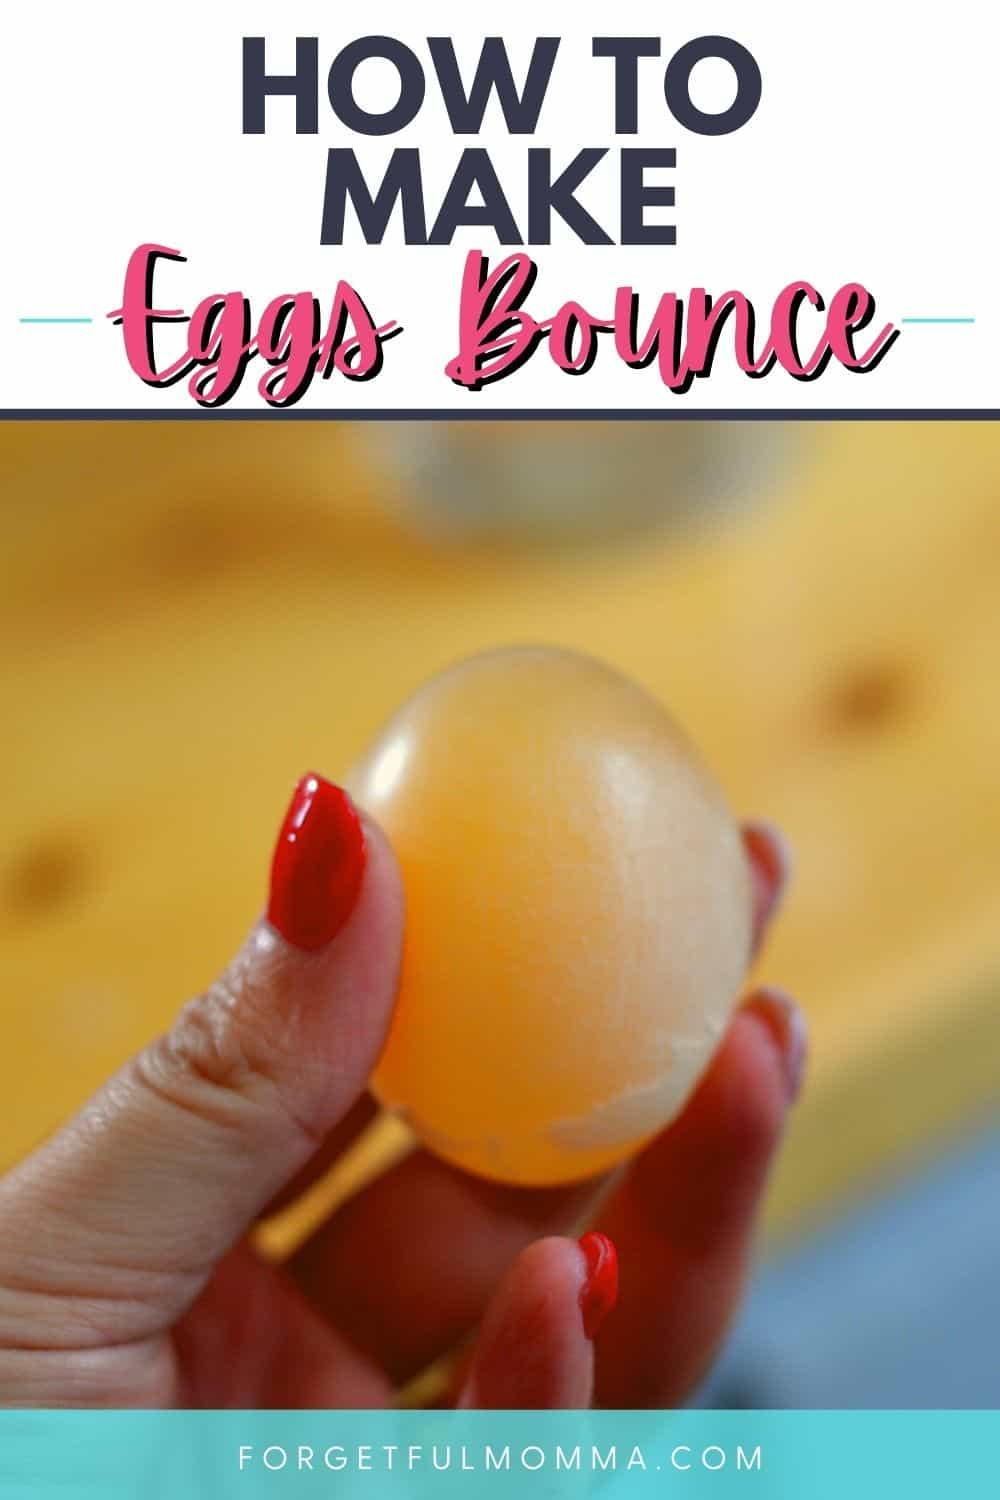 Glowing Bouncy Egg - vinegar and egg - Rubber Egg Science